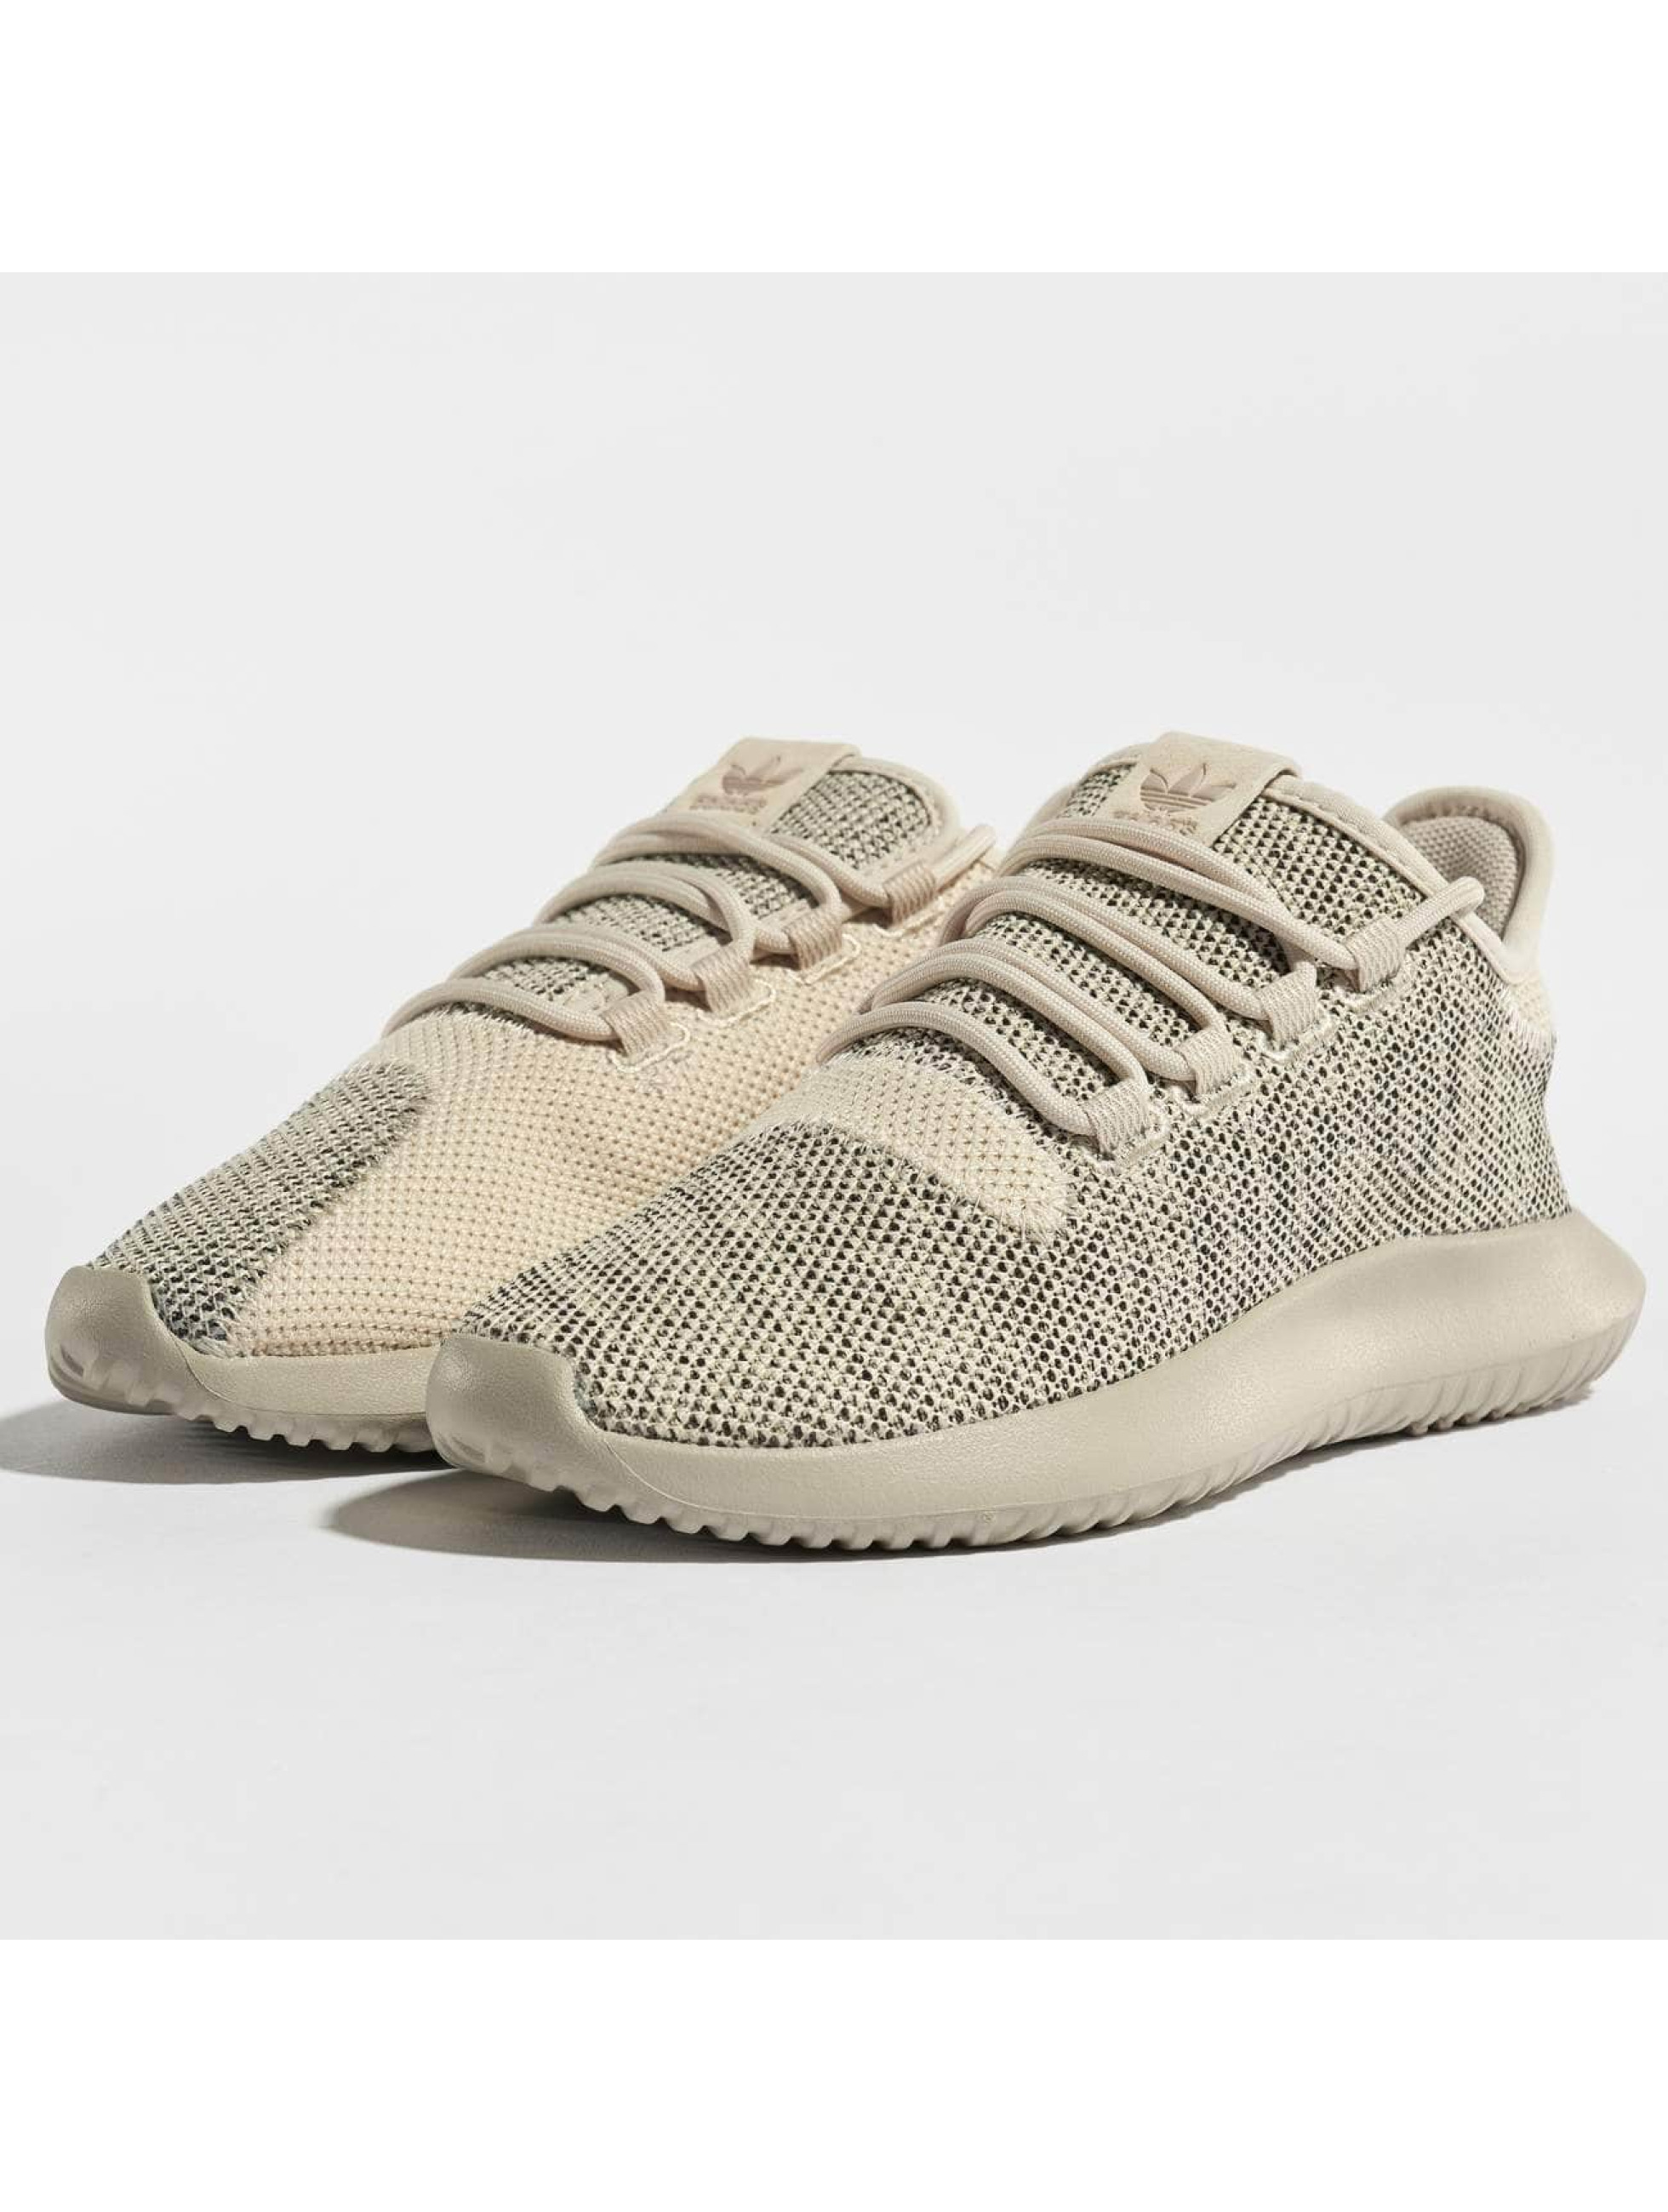 adidas tubular shadow j beige femme baskets adidas. Black Bedroom Furniture Sets. Home Design Ideas